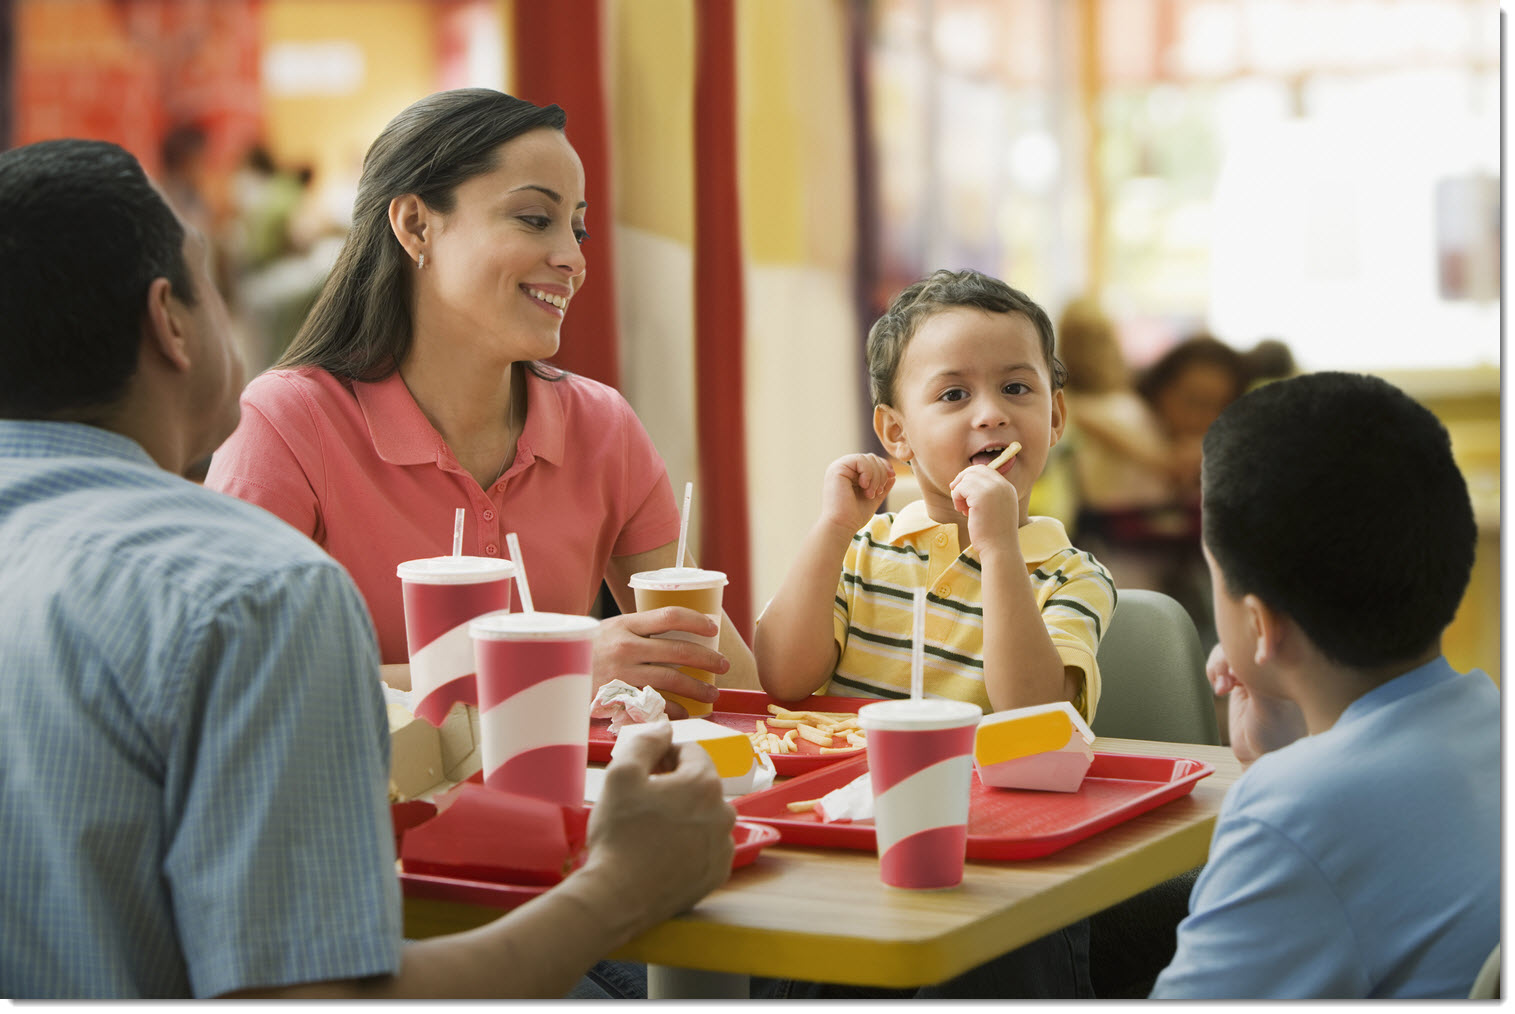 family time at mcdonalds